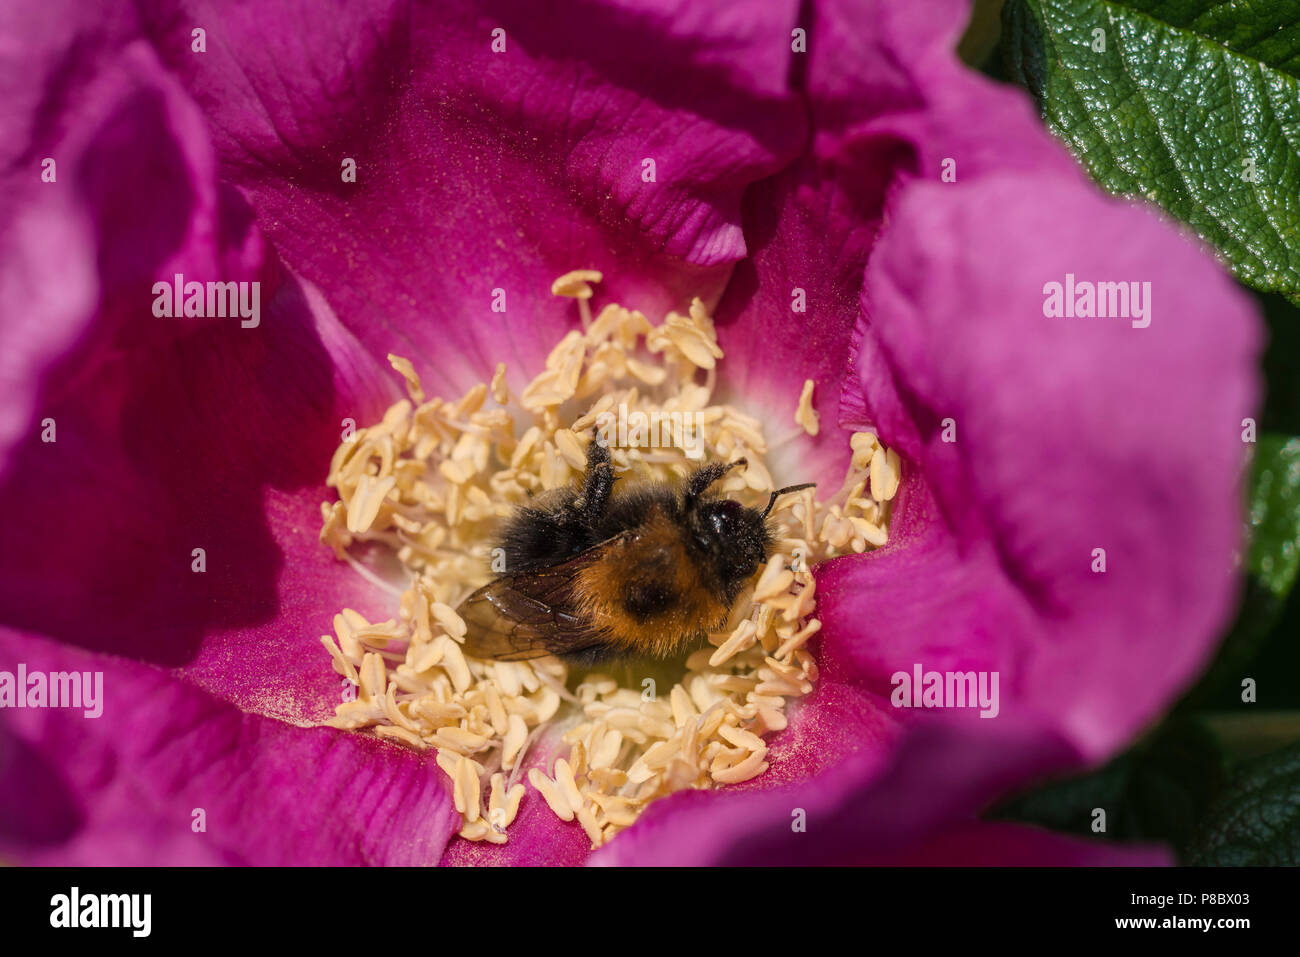 Bee in a rose gathering pollen - not feeding on nectar, rolling itself repeatedly in the pollen-bearing anthers of the flower. - Stock Image